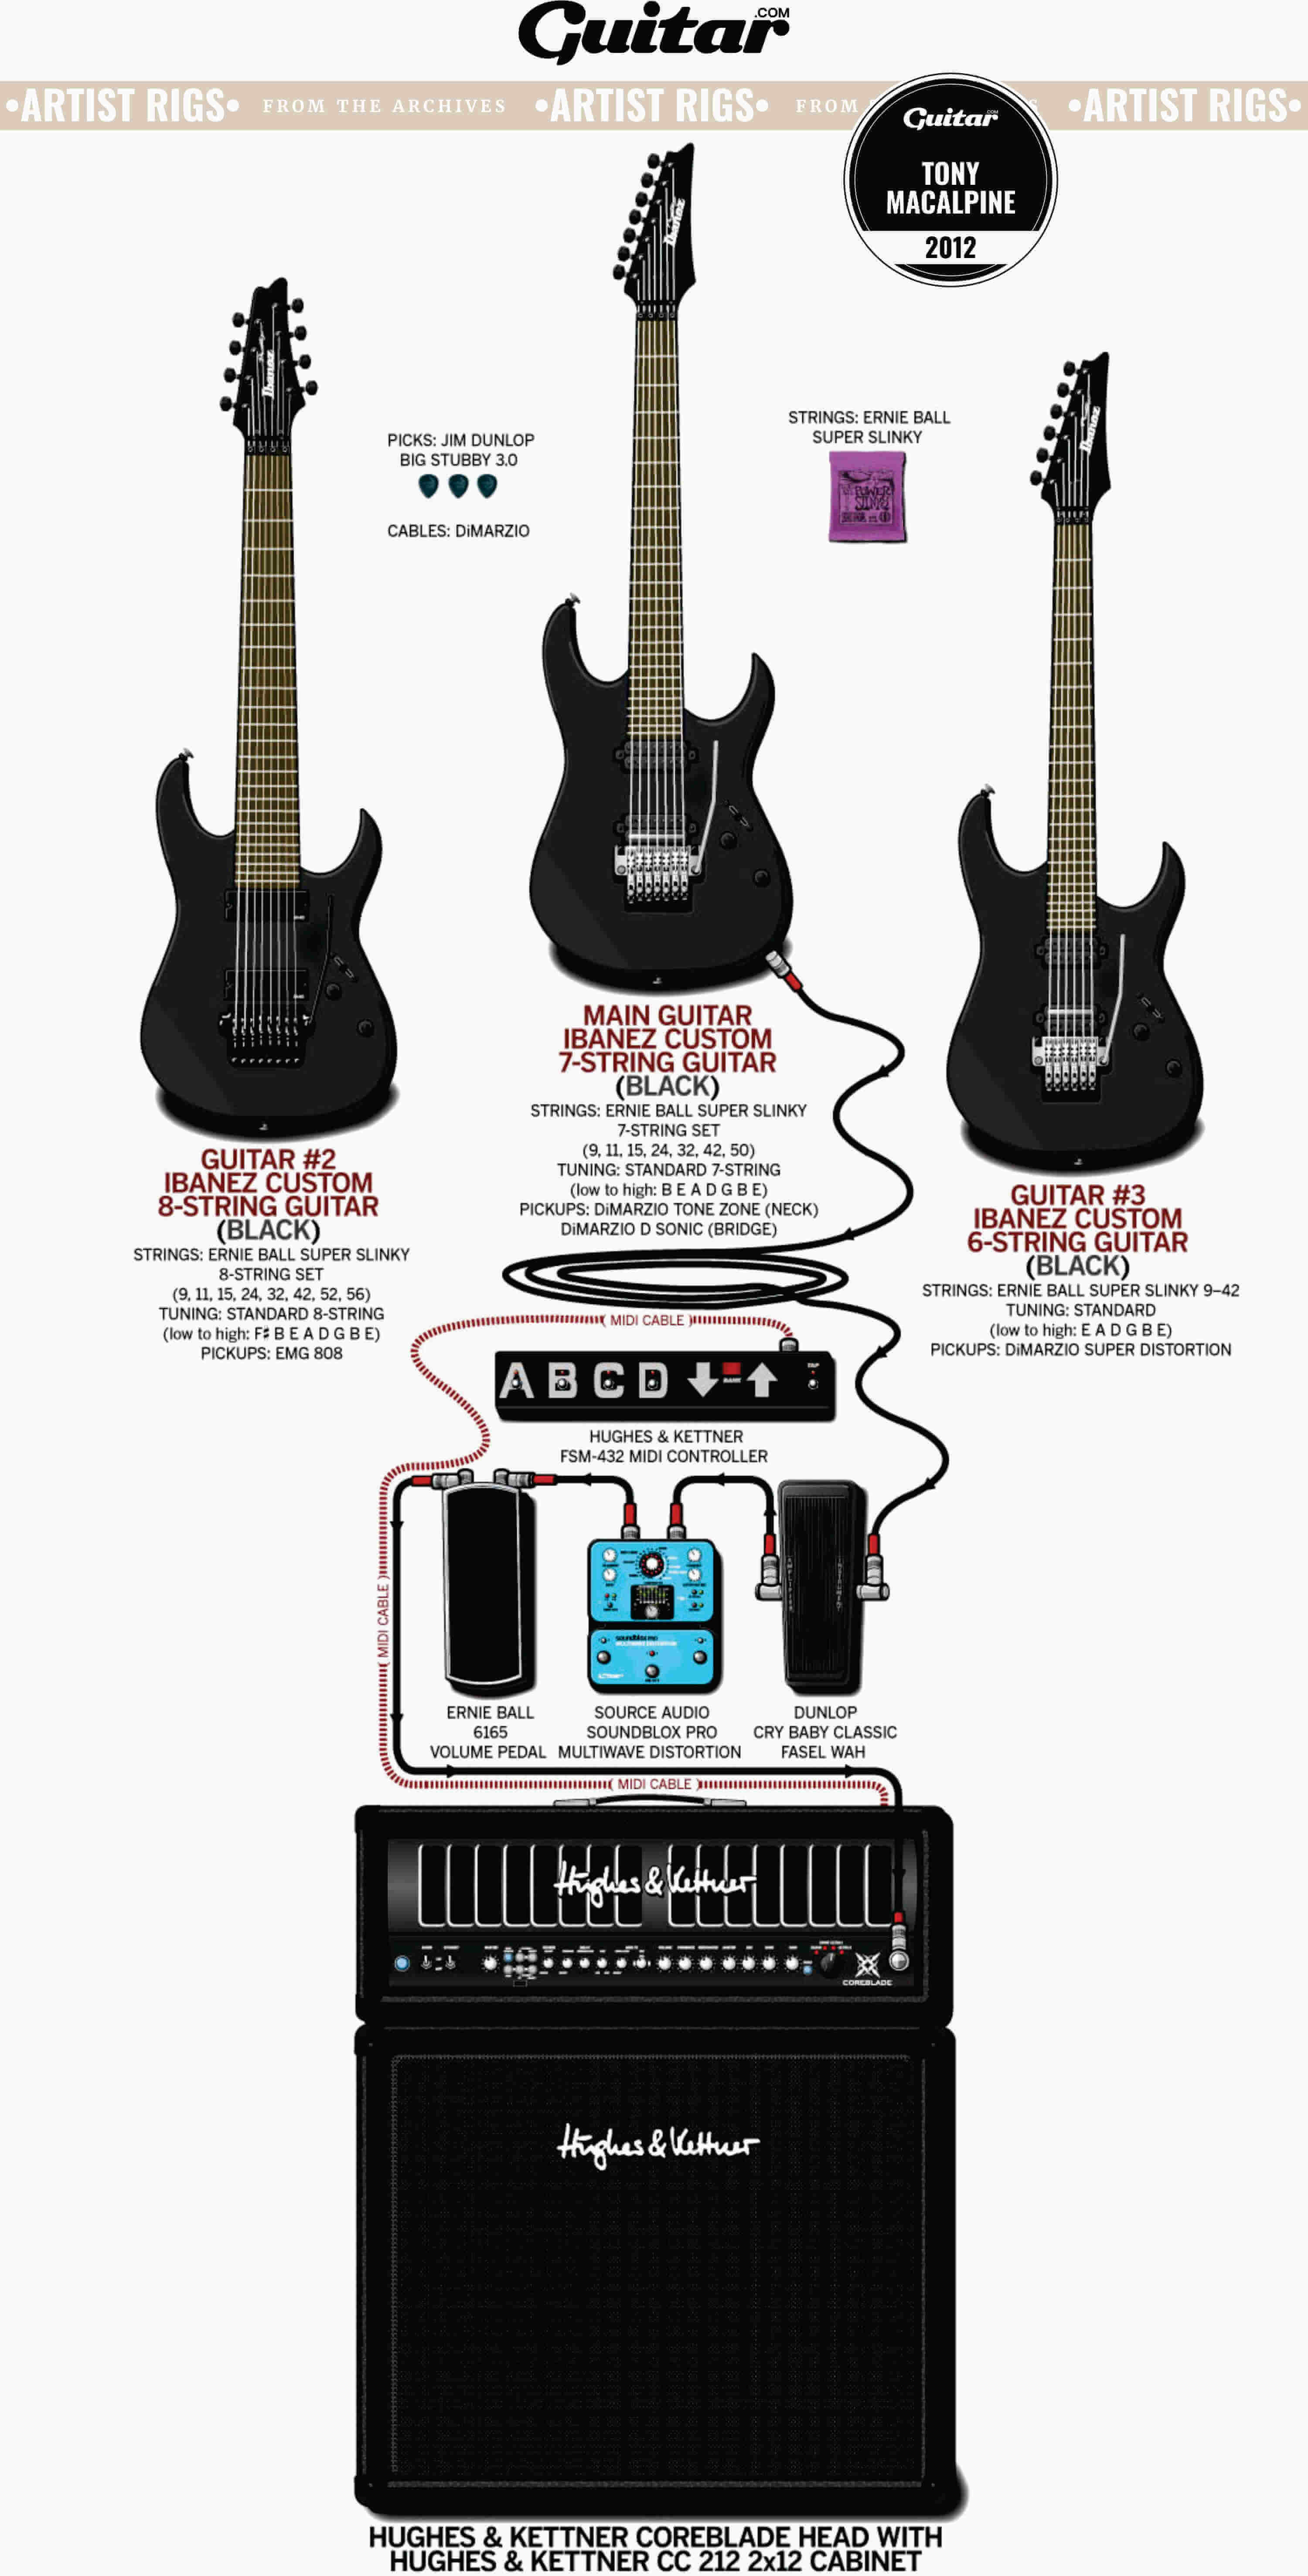 Rig Diagram: Tony MacAlpine (2012)